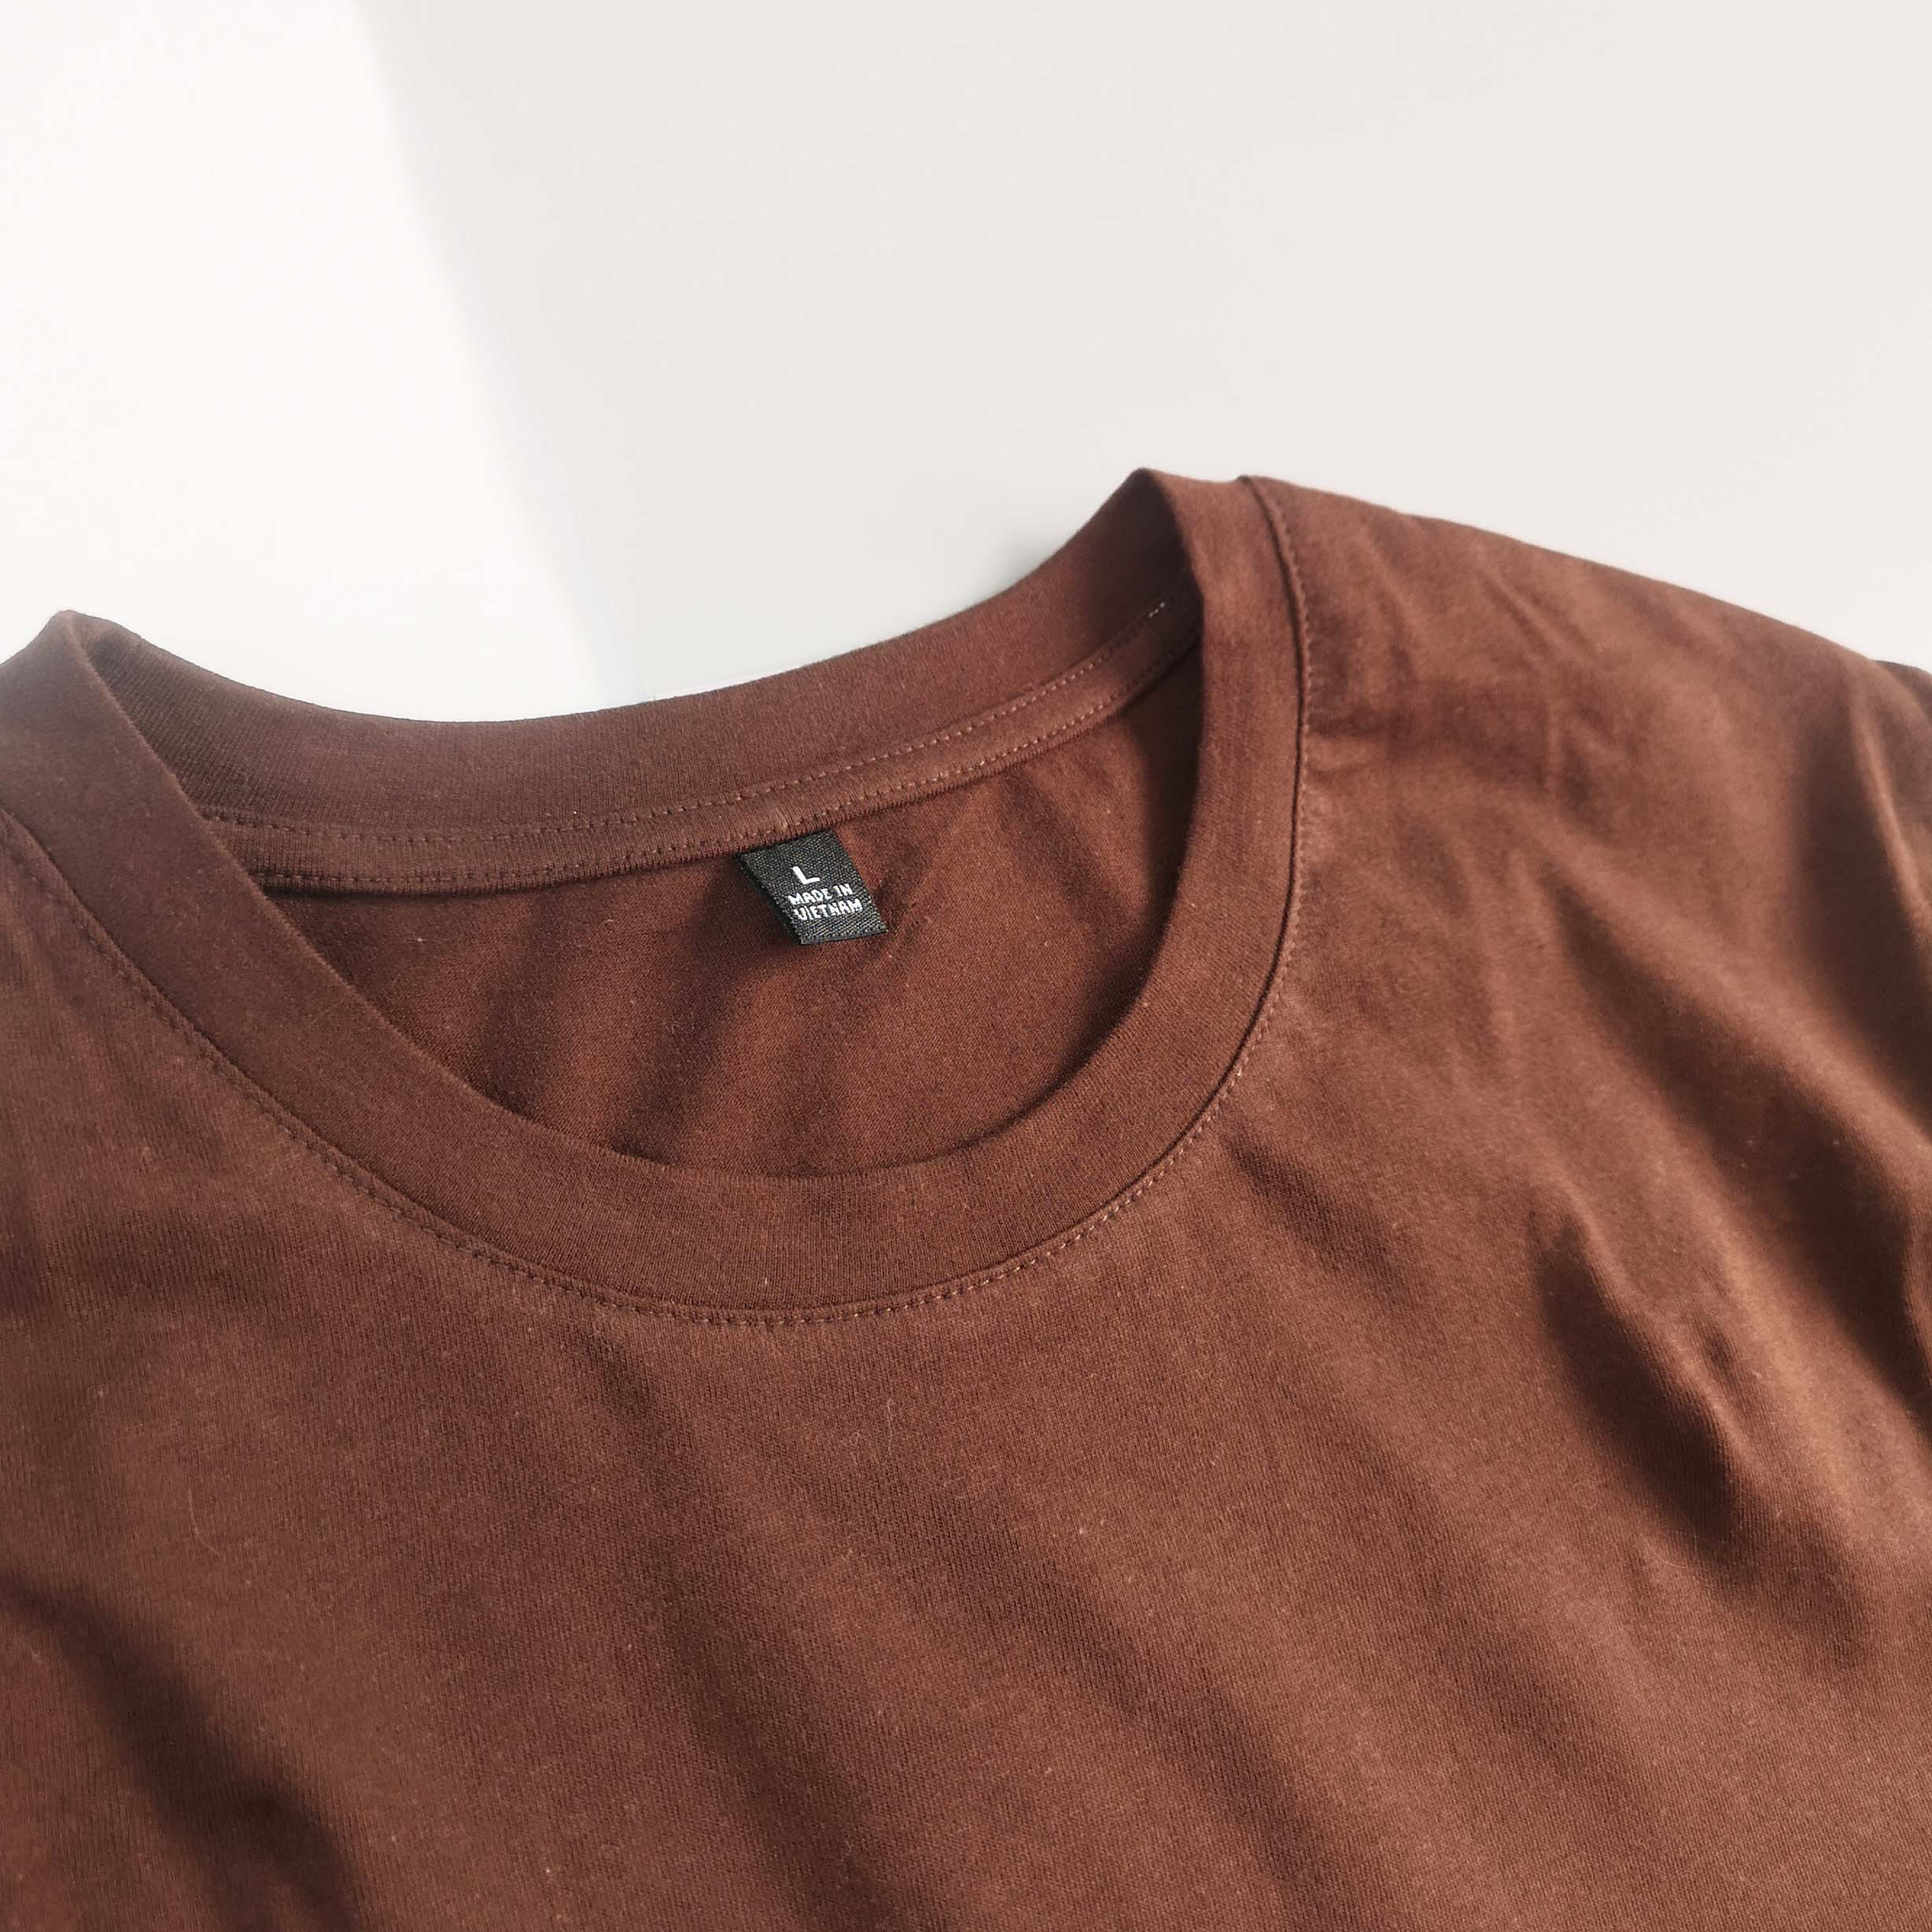 ÁO THUN UNISEX COTTON 100% IN HÌNH THE SKY IS NOT THE LIMIT (chocolate color)